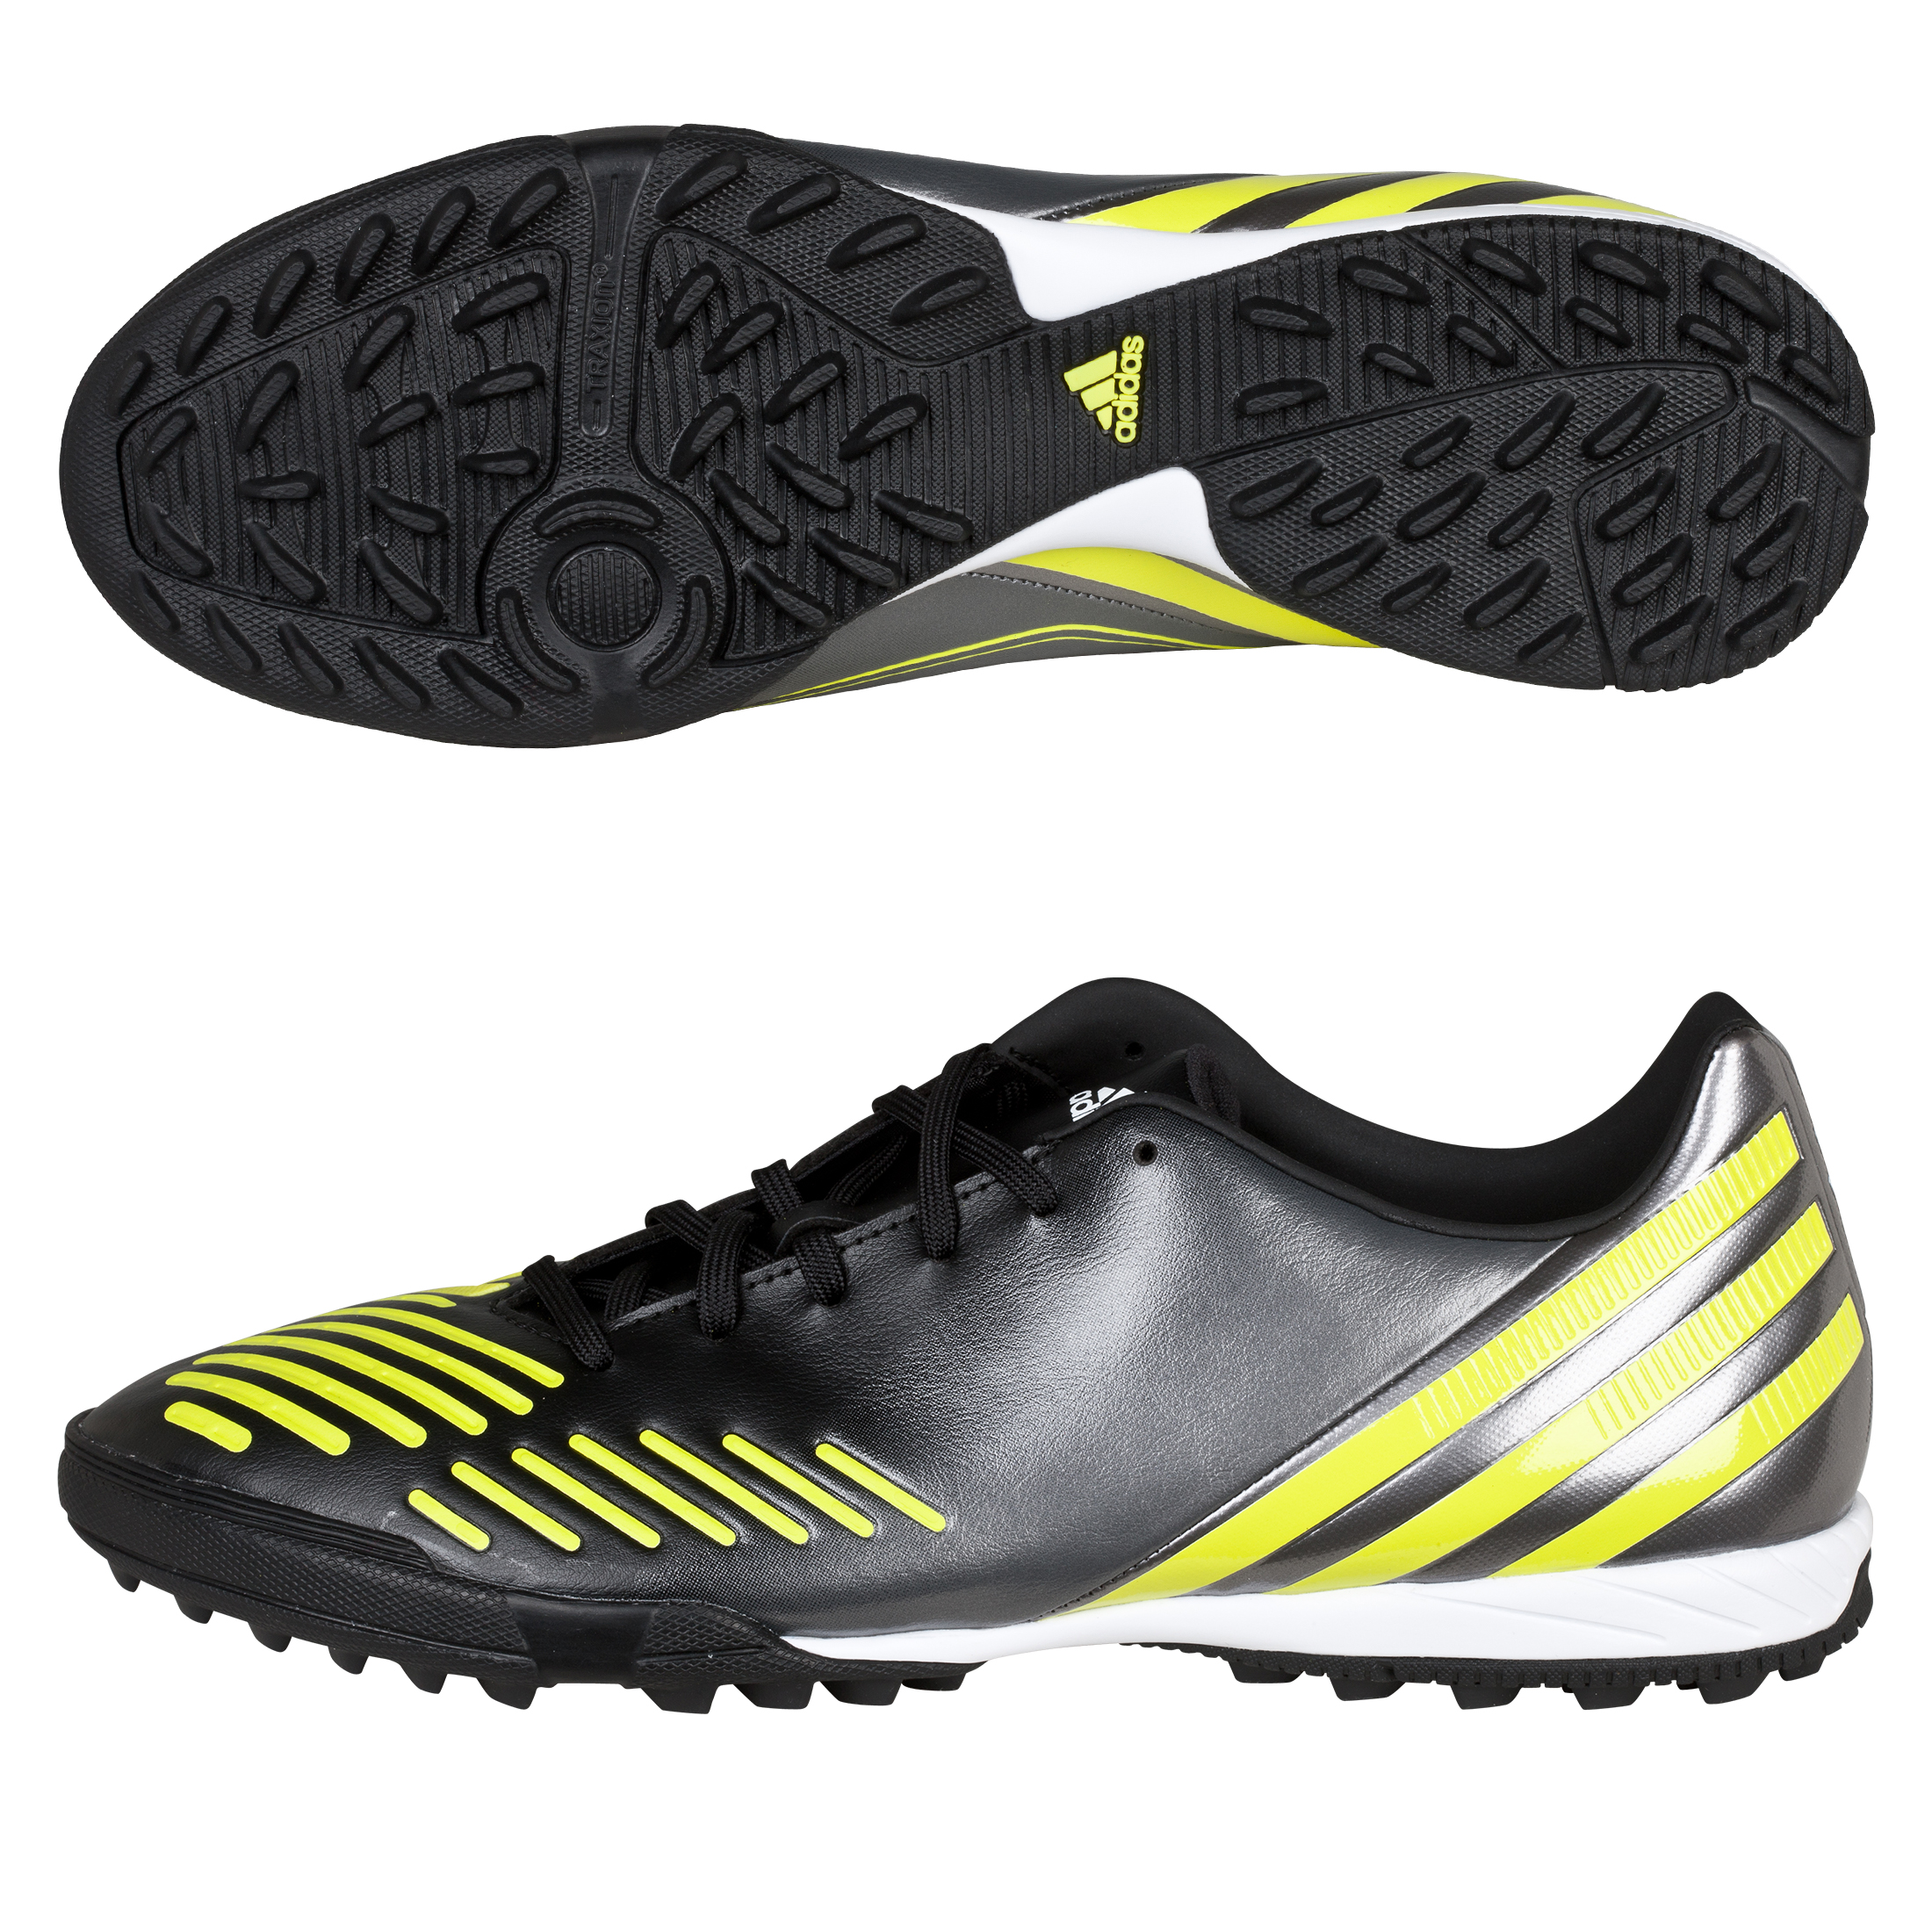 Adidas Predator Absolado LZ TRX Astro Turf Trainers - Black/Lab Lime/Neo Iron Met